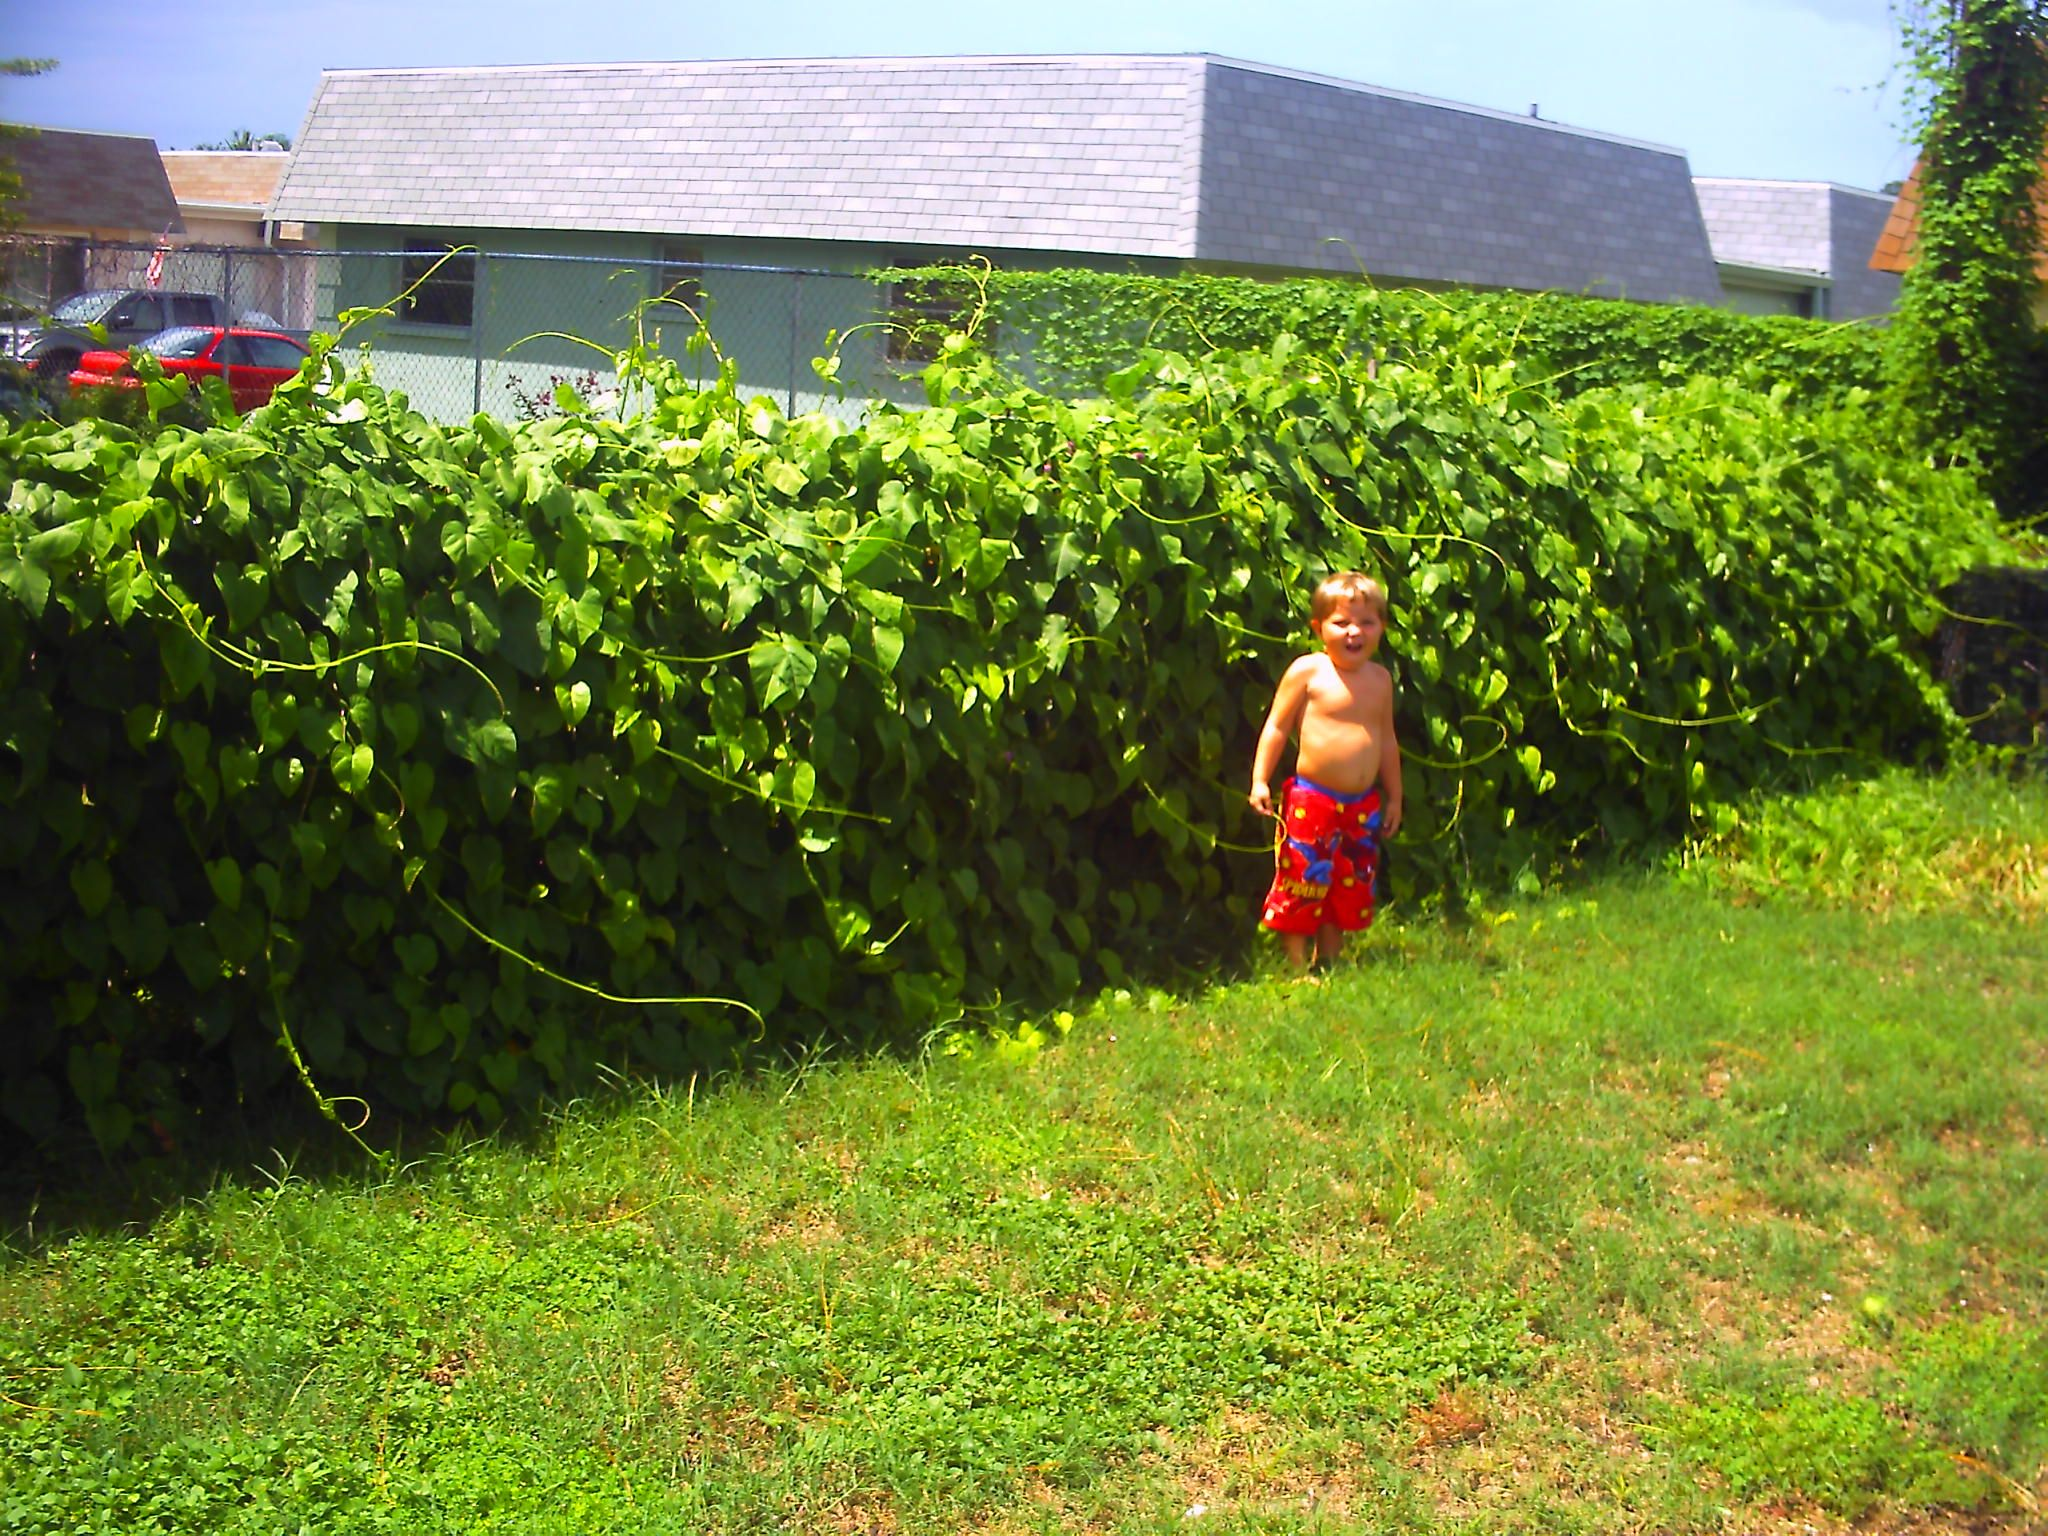 How To Conceal Chain Link Fences 171 Delaware Fence Company